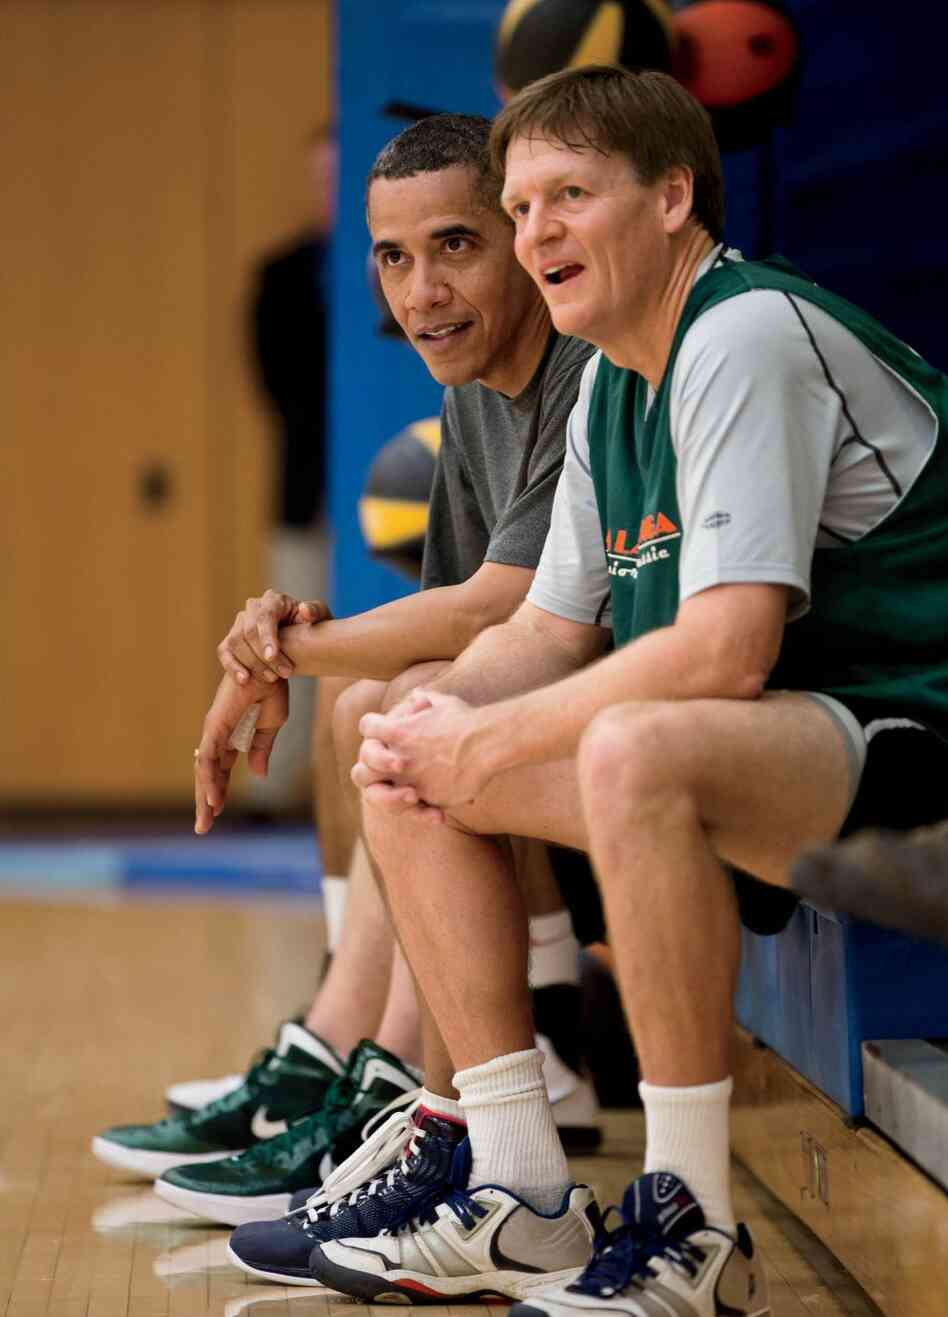 Contributing editor Michael Lewis played basketball with President Obama while working on a piece for Va